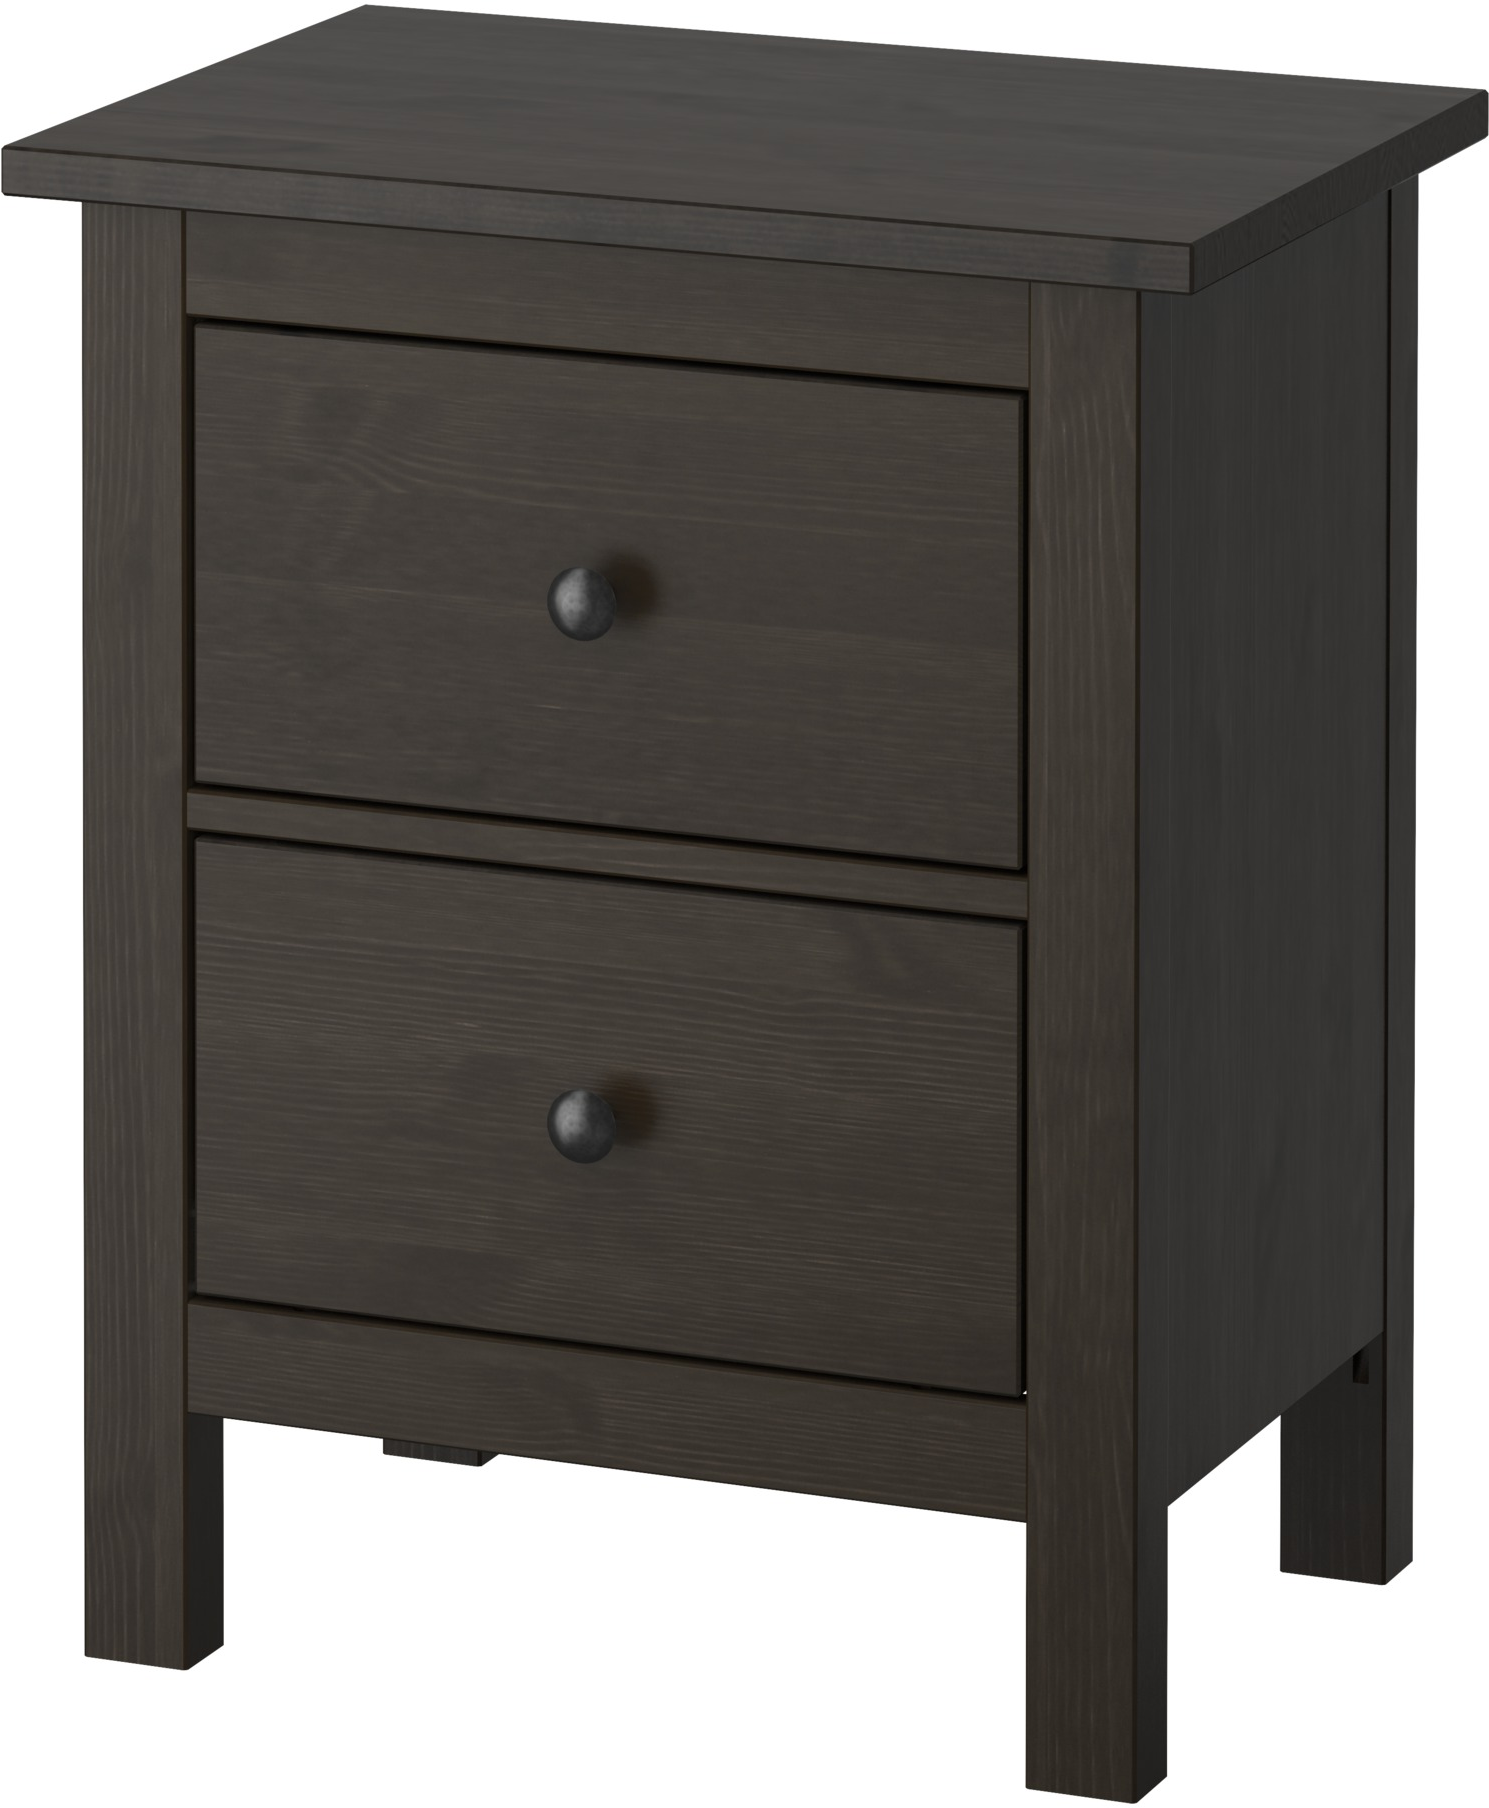 HEMNES 2-drawer chest - black-brown - IKEA